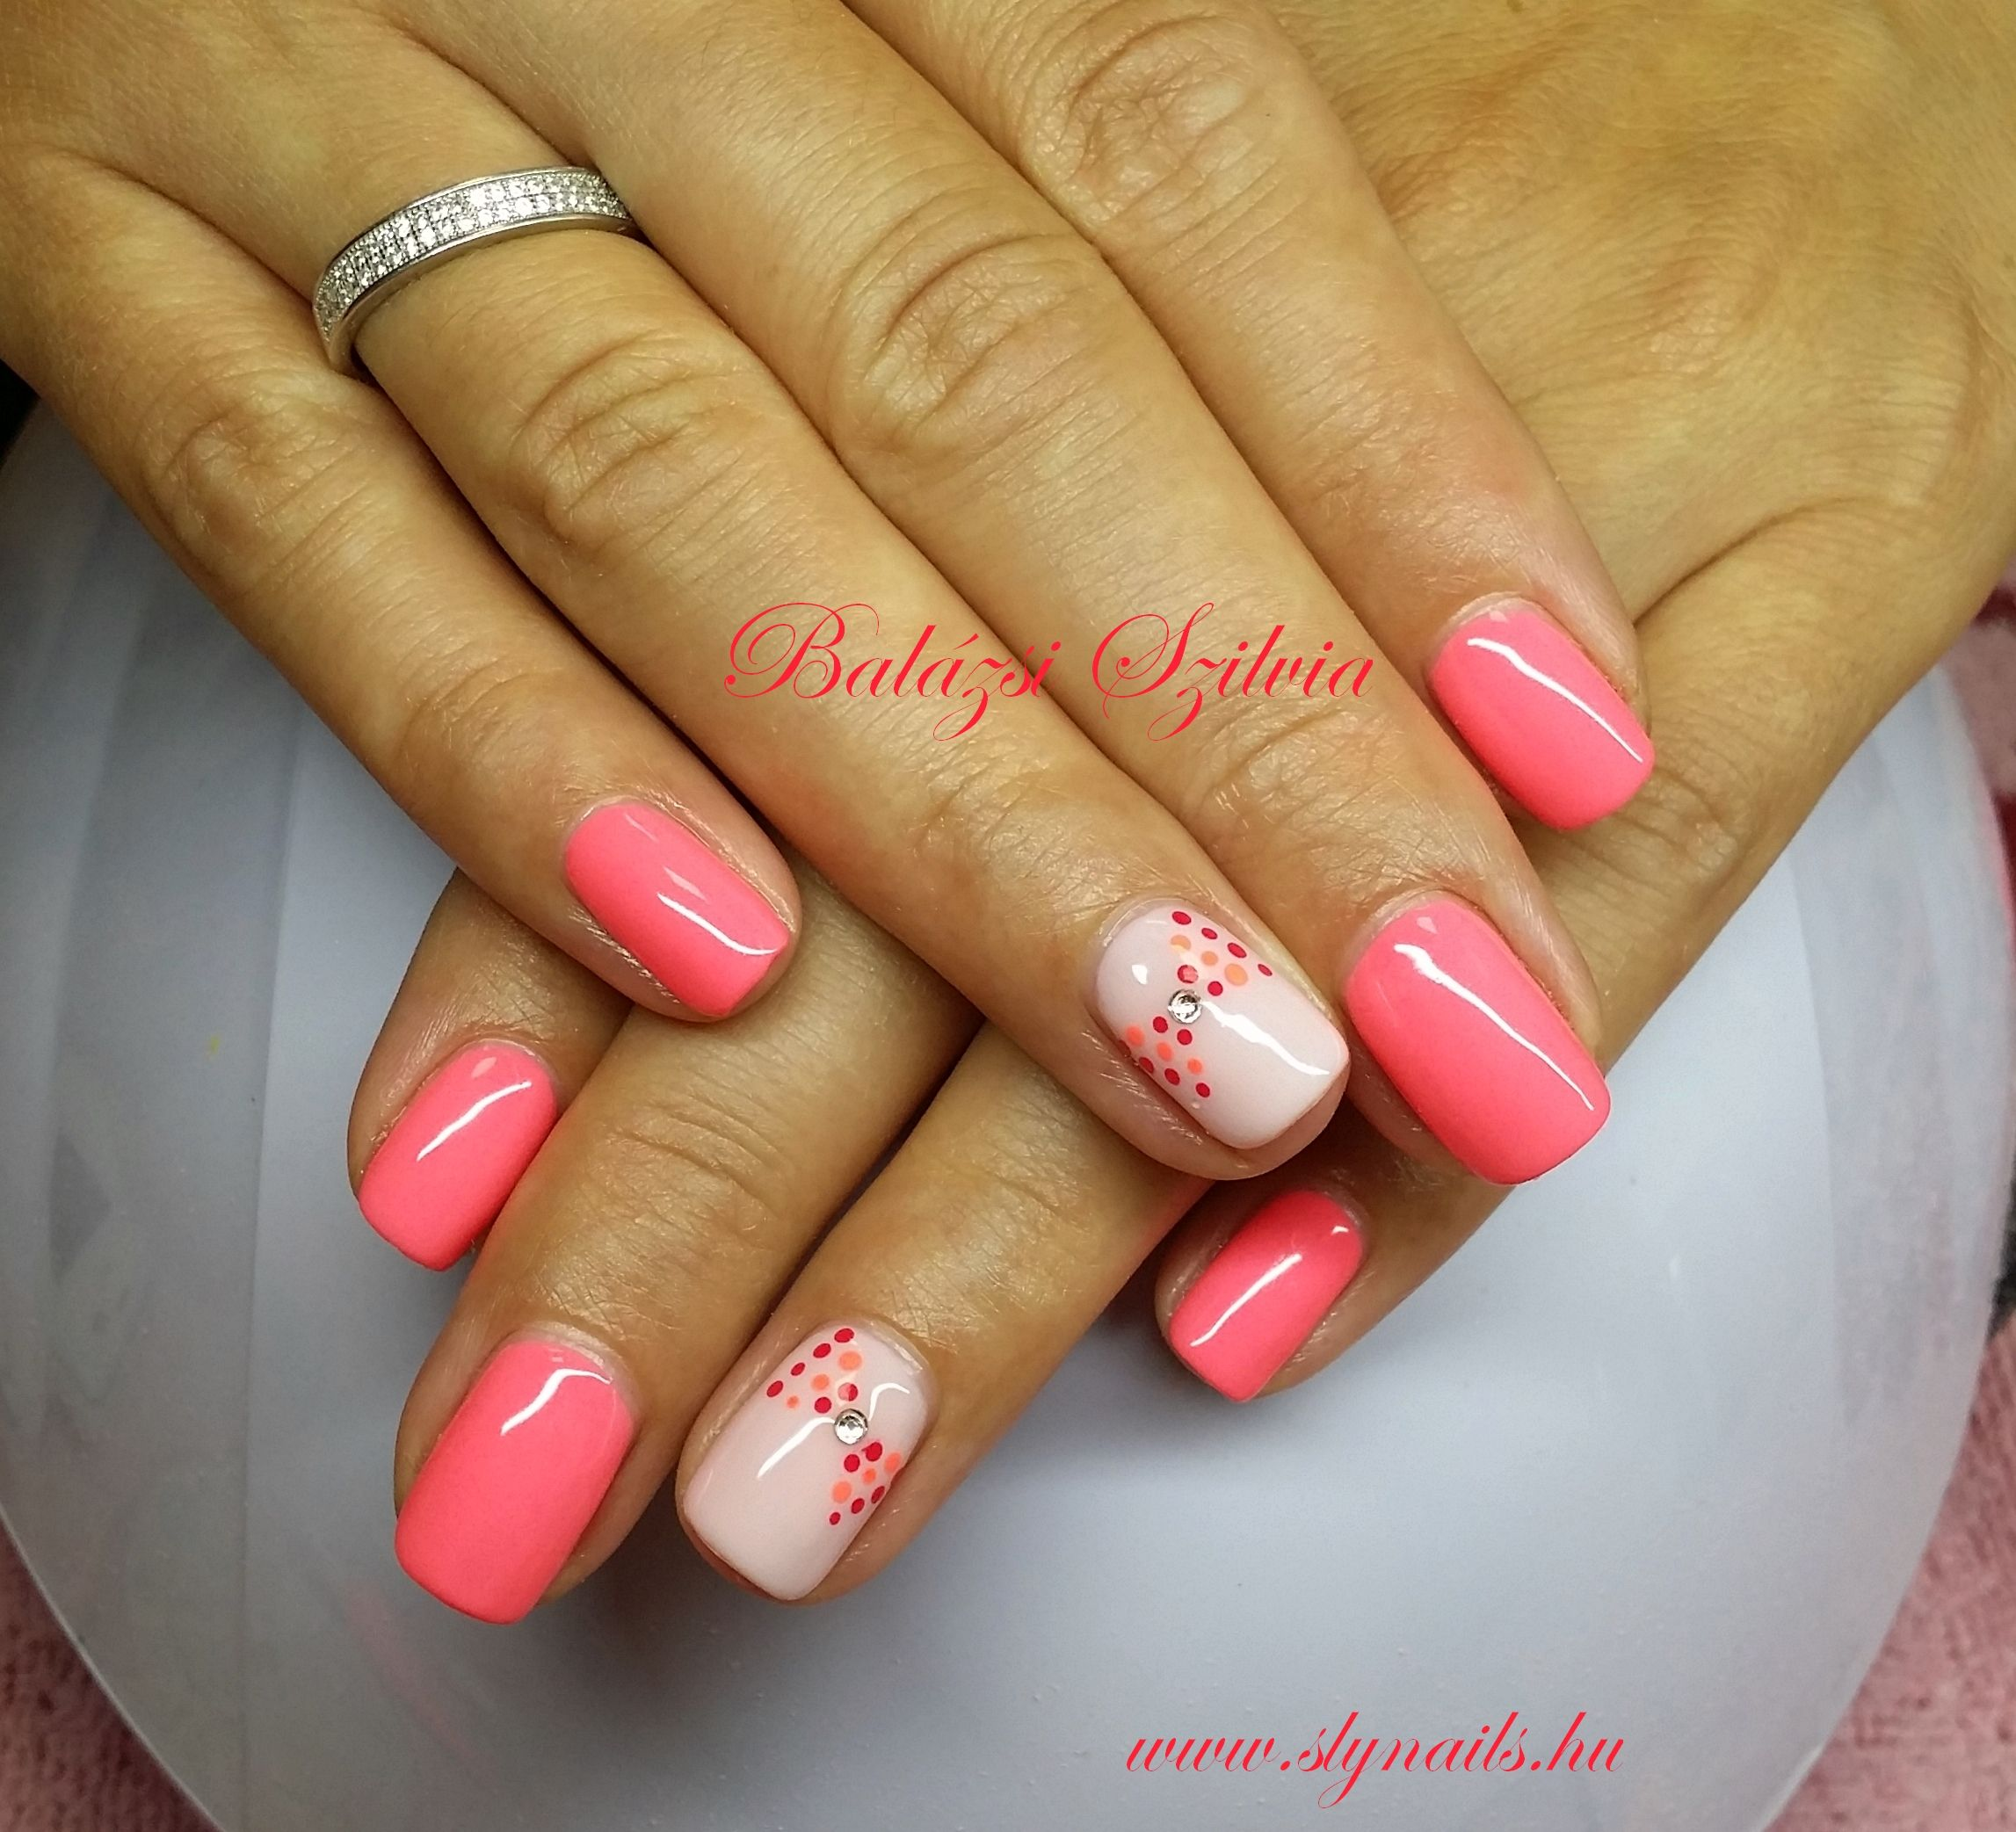 Neon Pink Gel Lakk Pink Nails Pretty Acrylic Nails Dream Nails